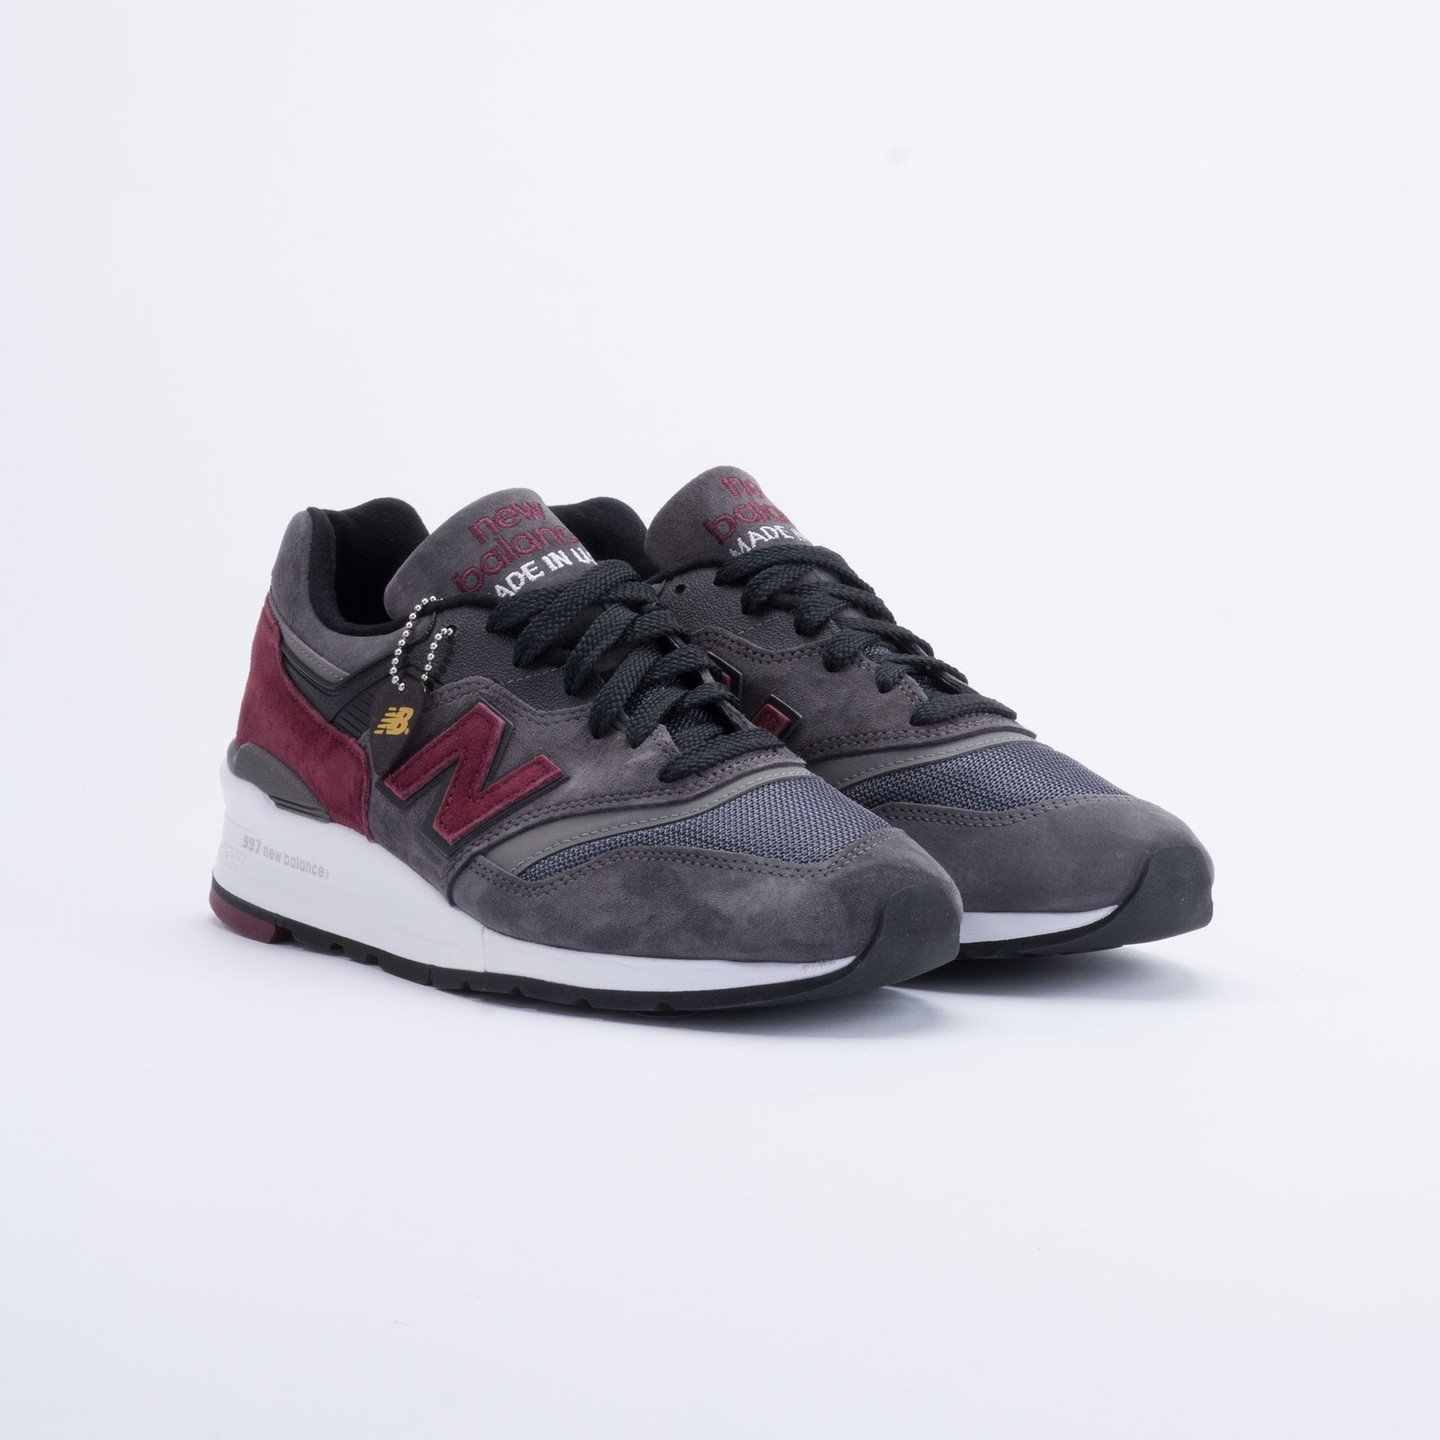 New Balance M997 Made in USA Charcoal/Burgundy M997CCF-43